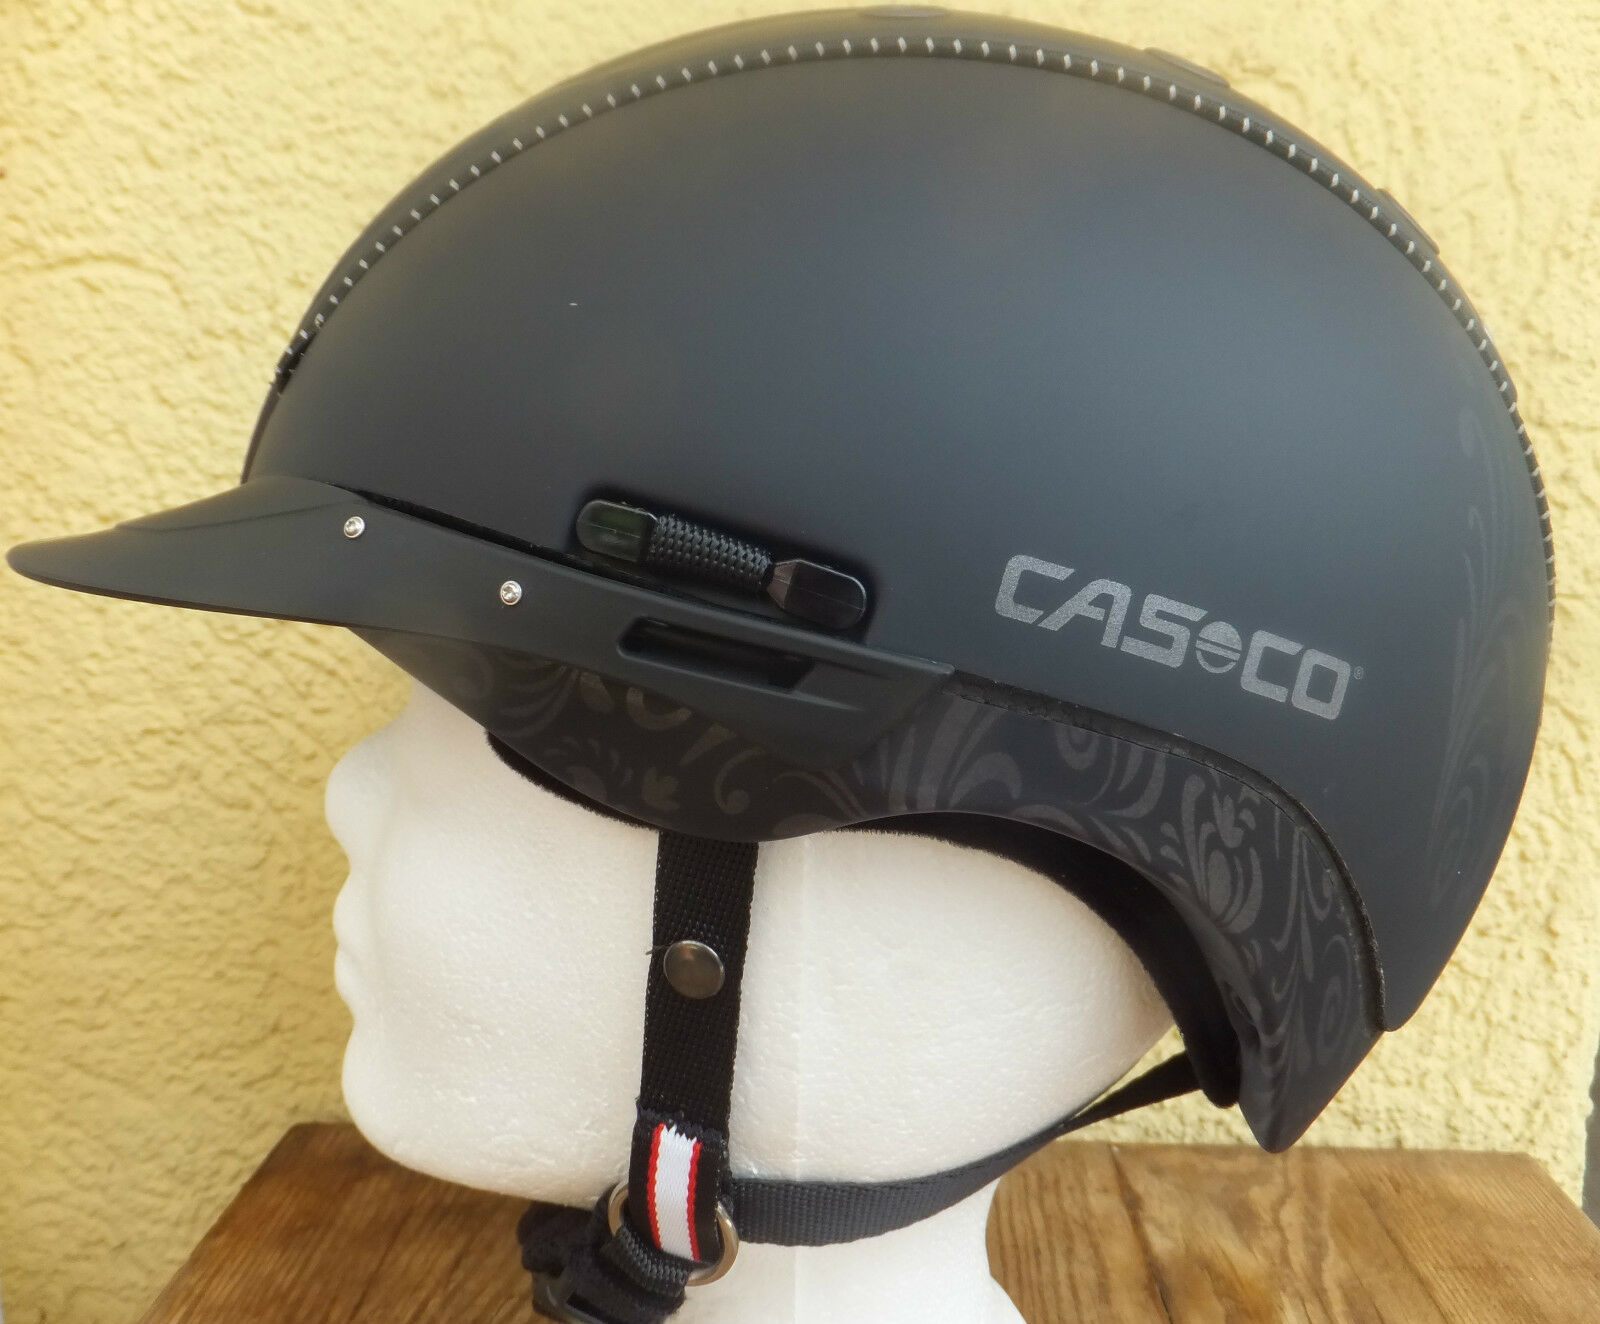 NEUES NEUES NEUES MODELL Casco Reithelm Reitkappe Mistrall 2 VG1.01 Siegel floral 0ff501